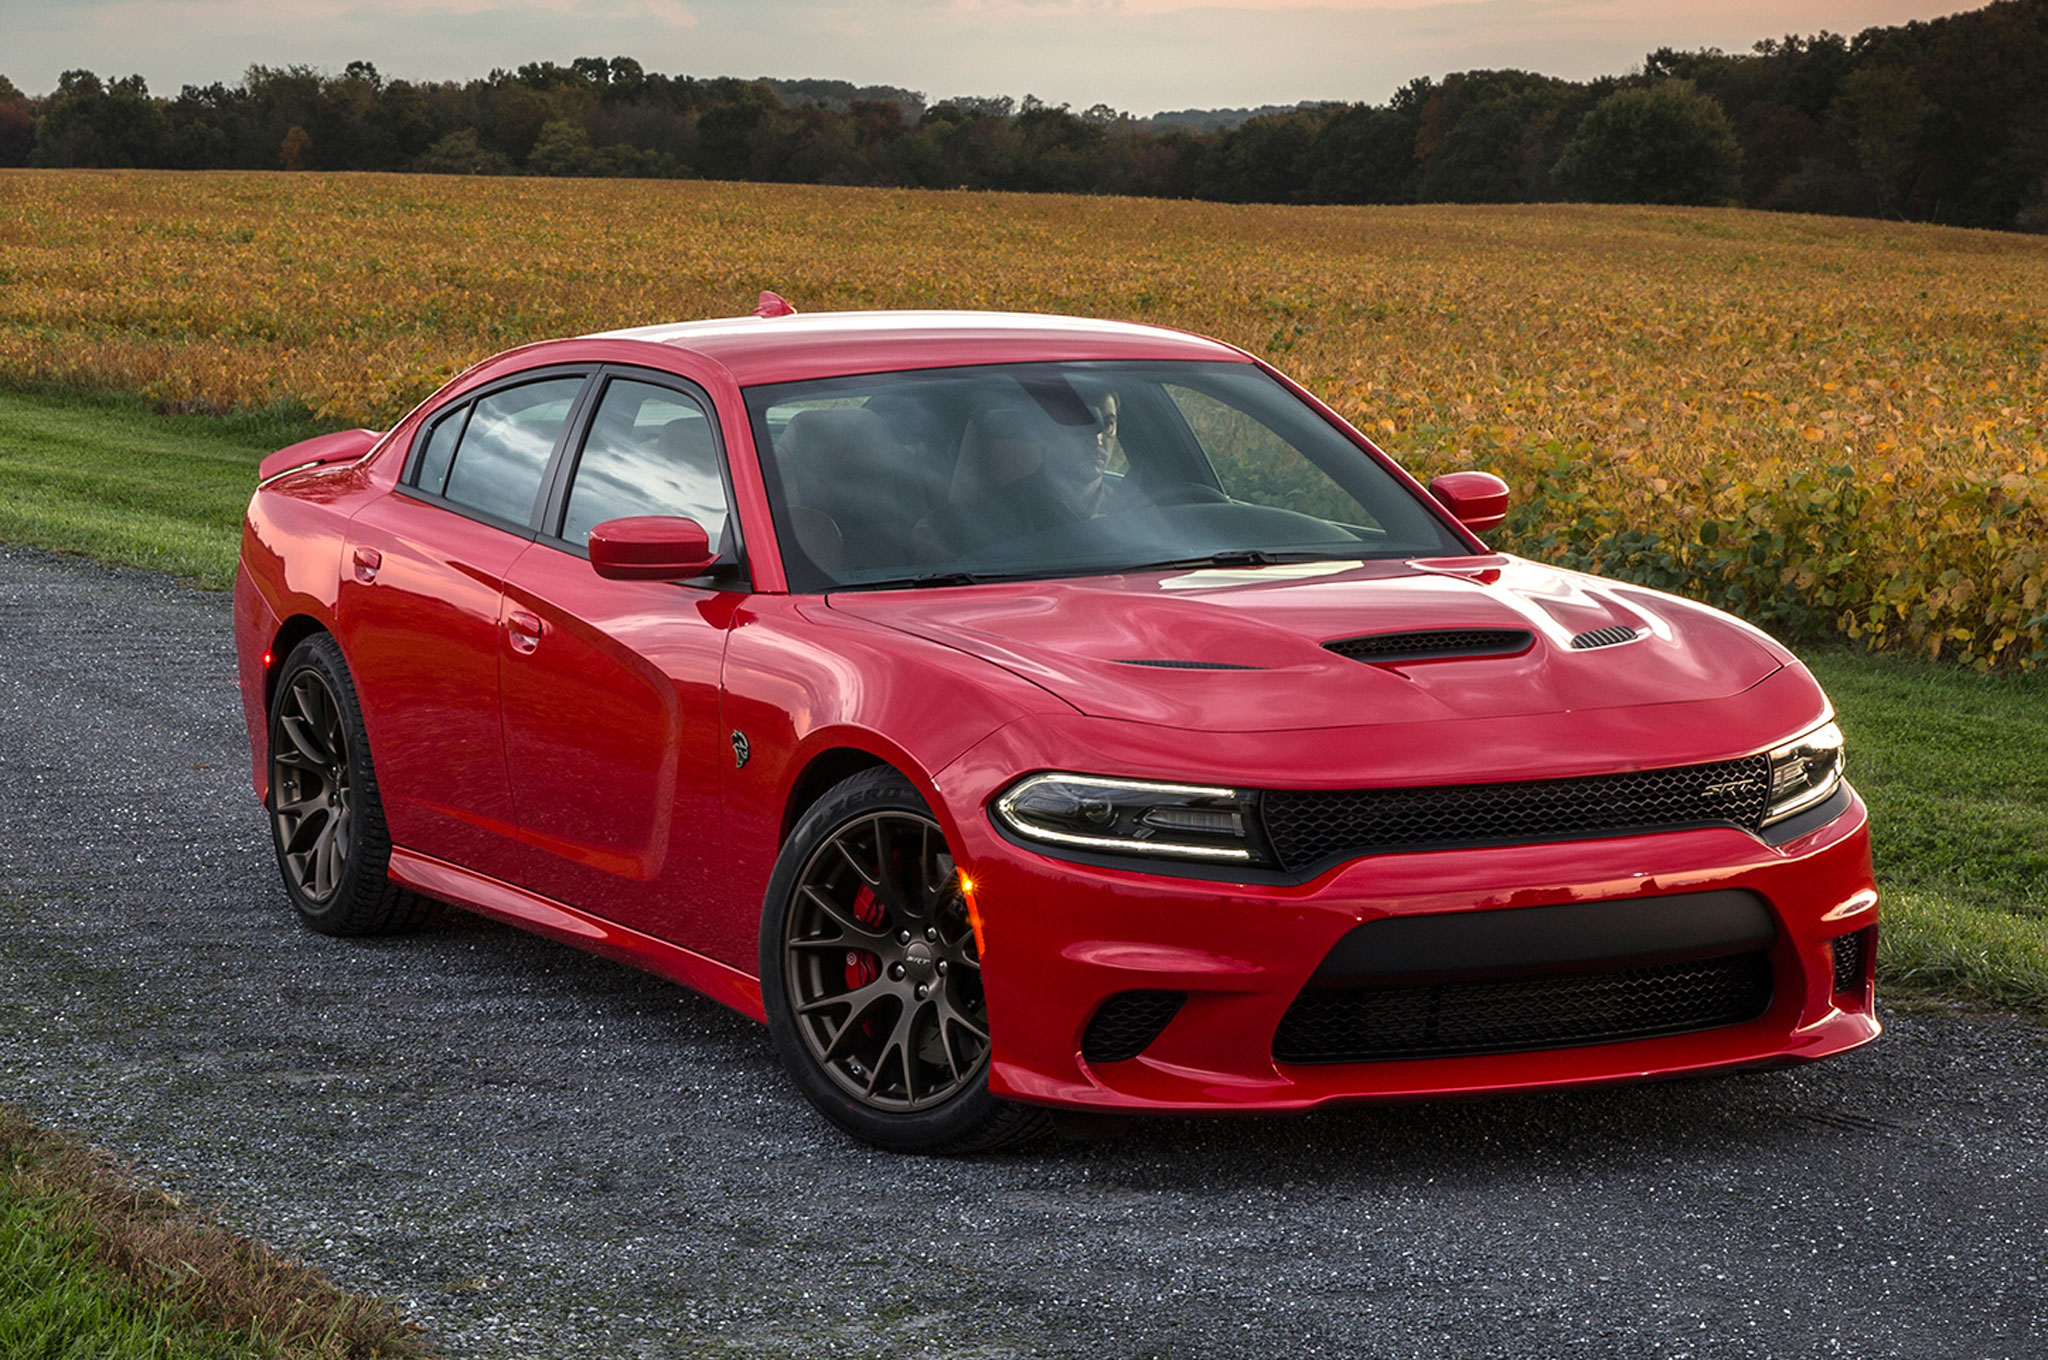 2016 dodge challenger charger hellcat prices increase 3 650 4 200. Black Bedroom Furniture Sets. Home Design Ideas